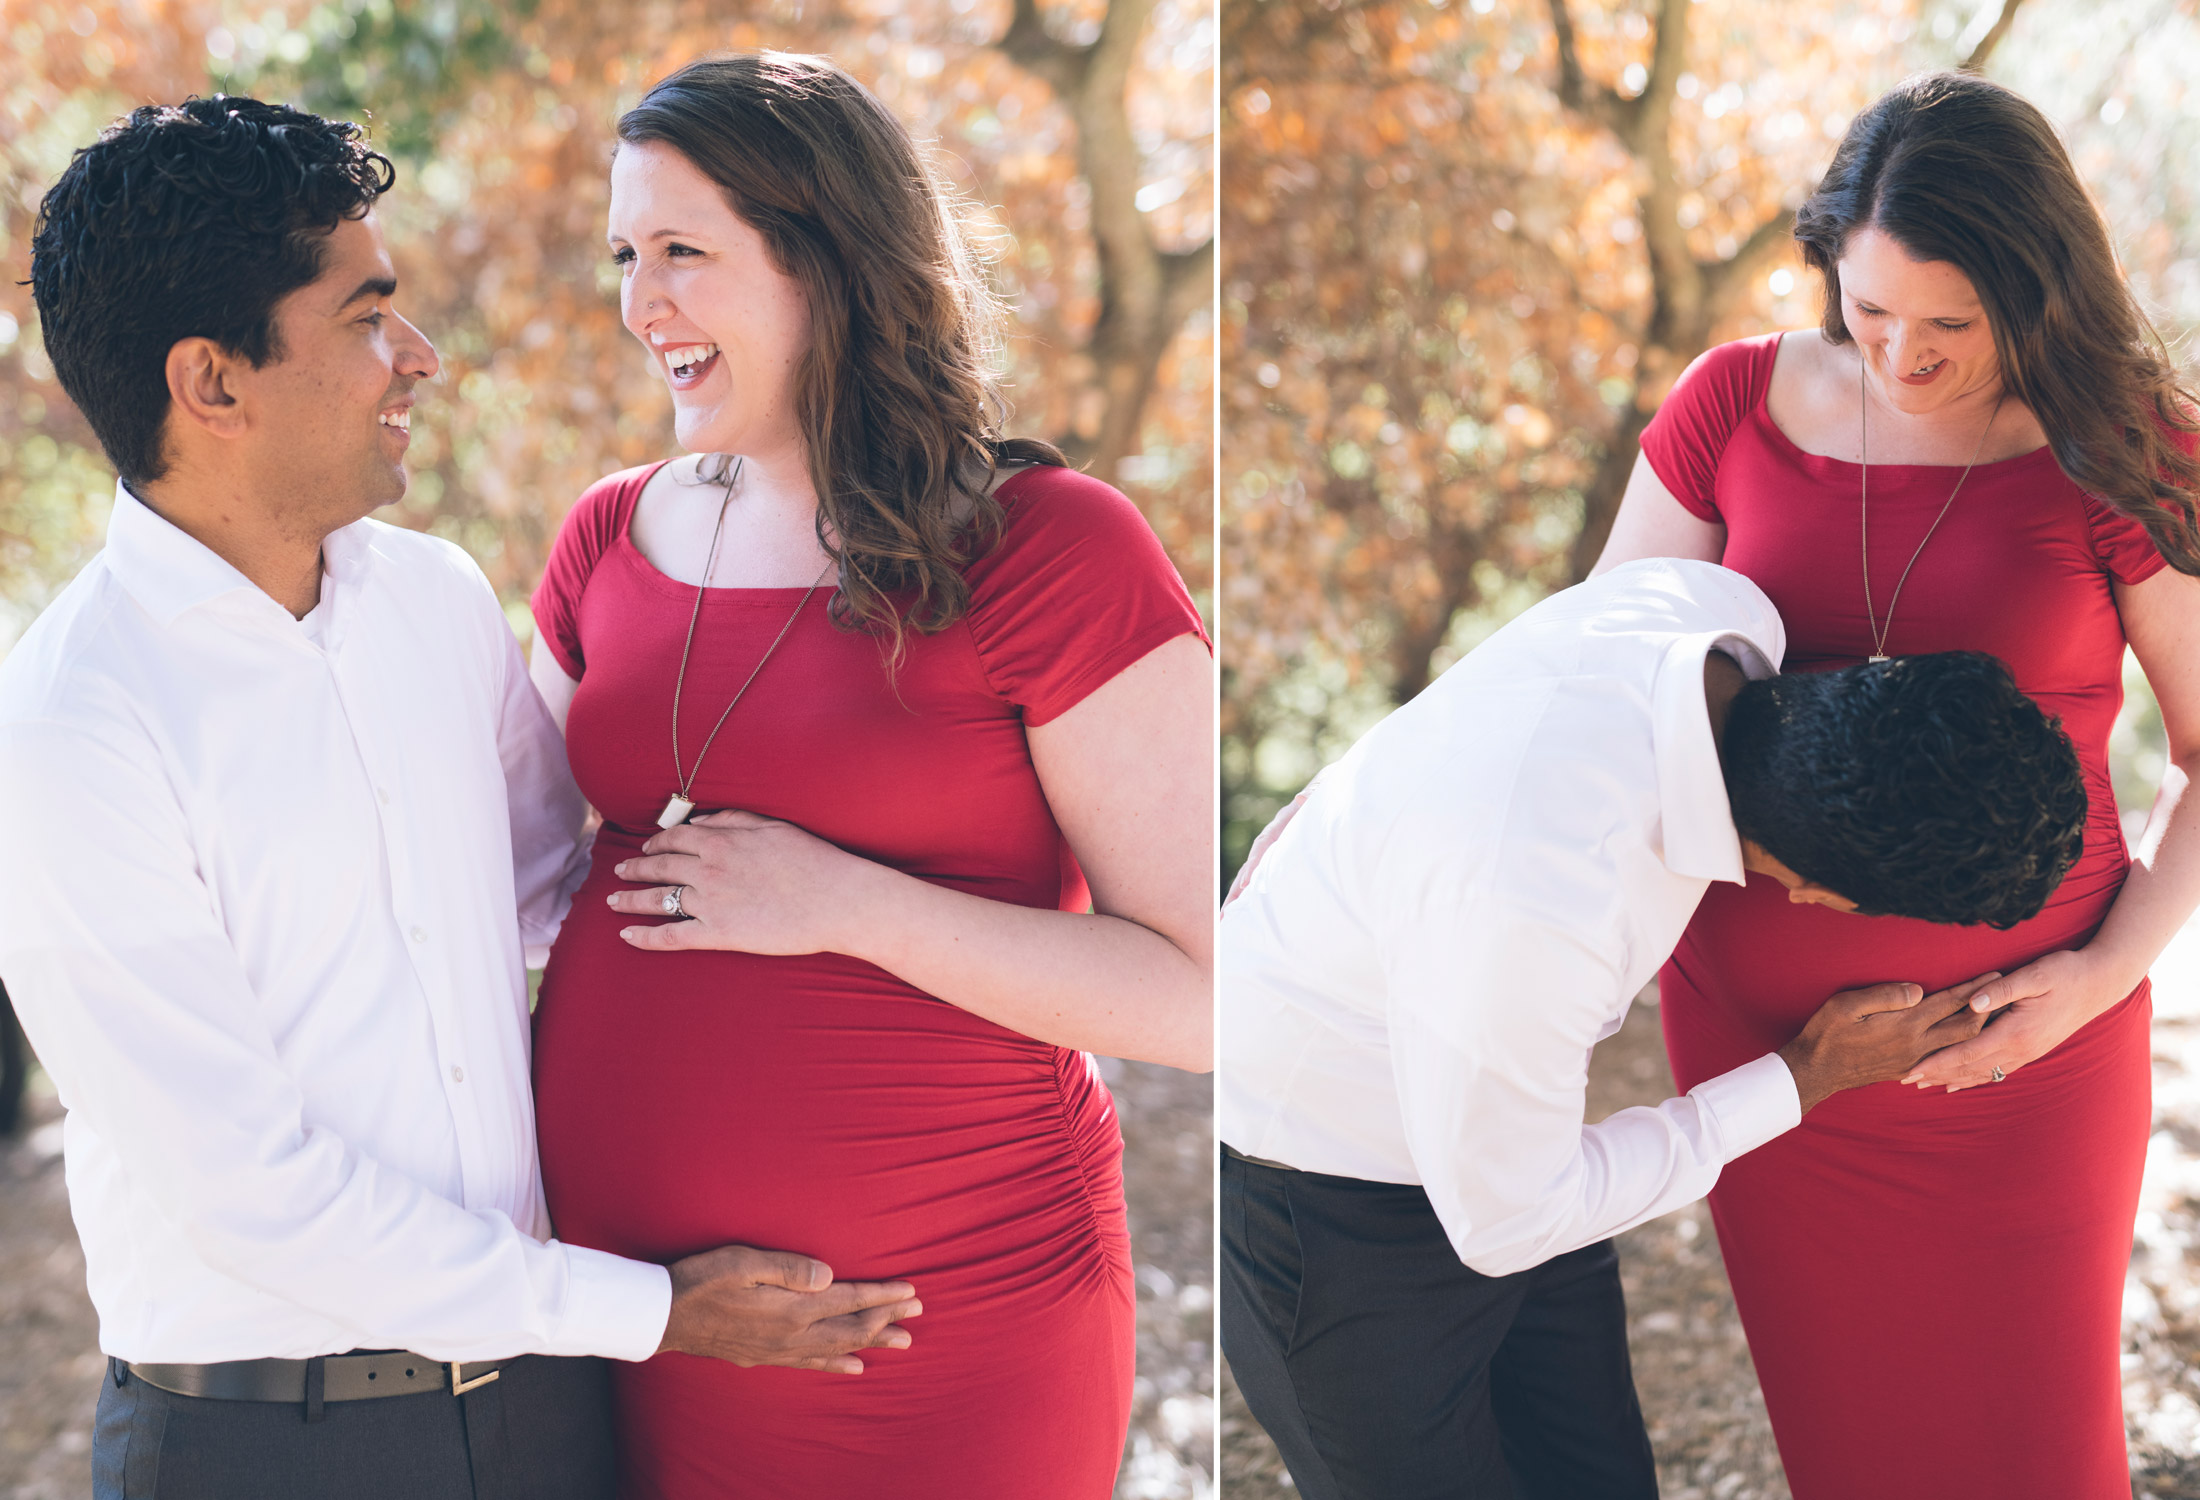 Lafayette Orinda Maternity Newborn Session0002.jpg